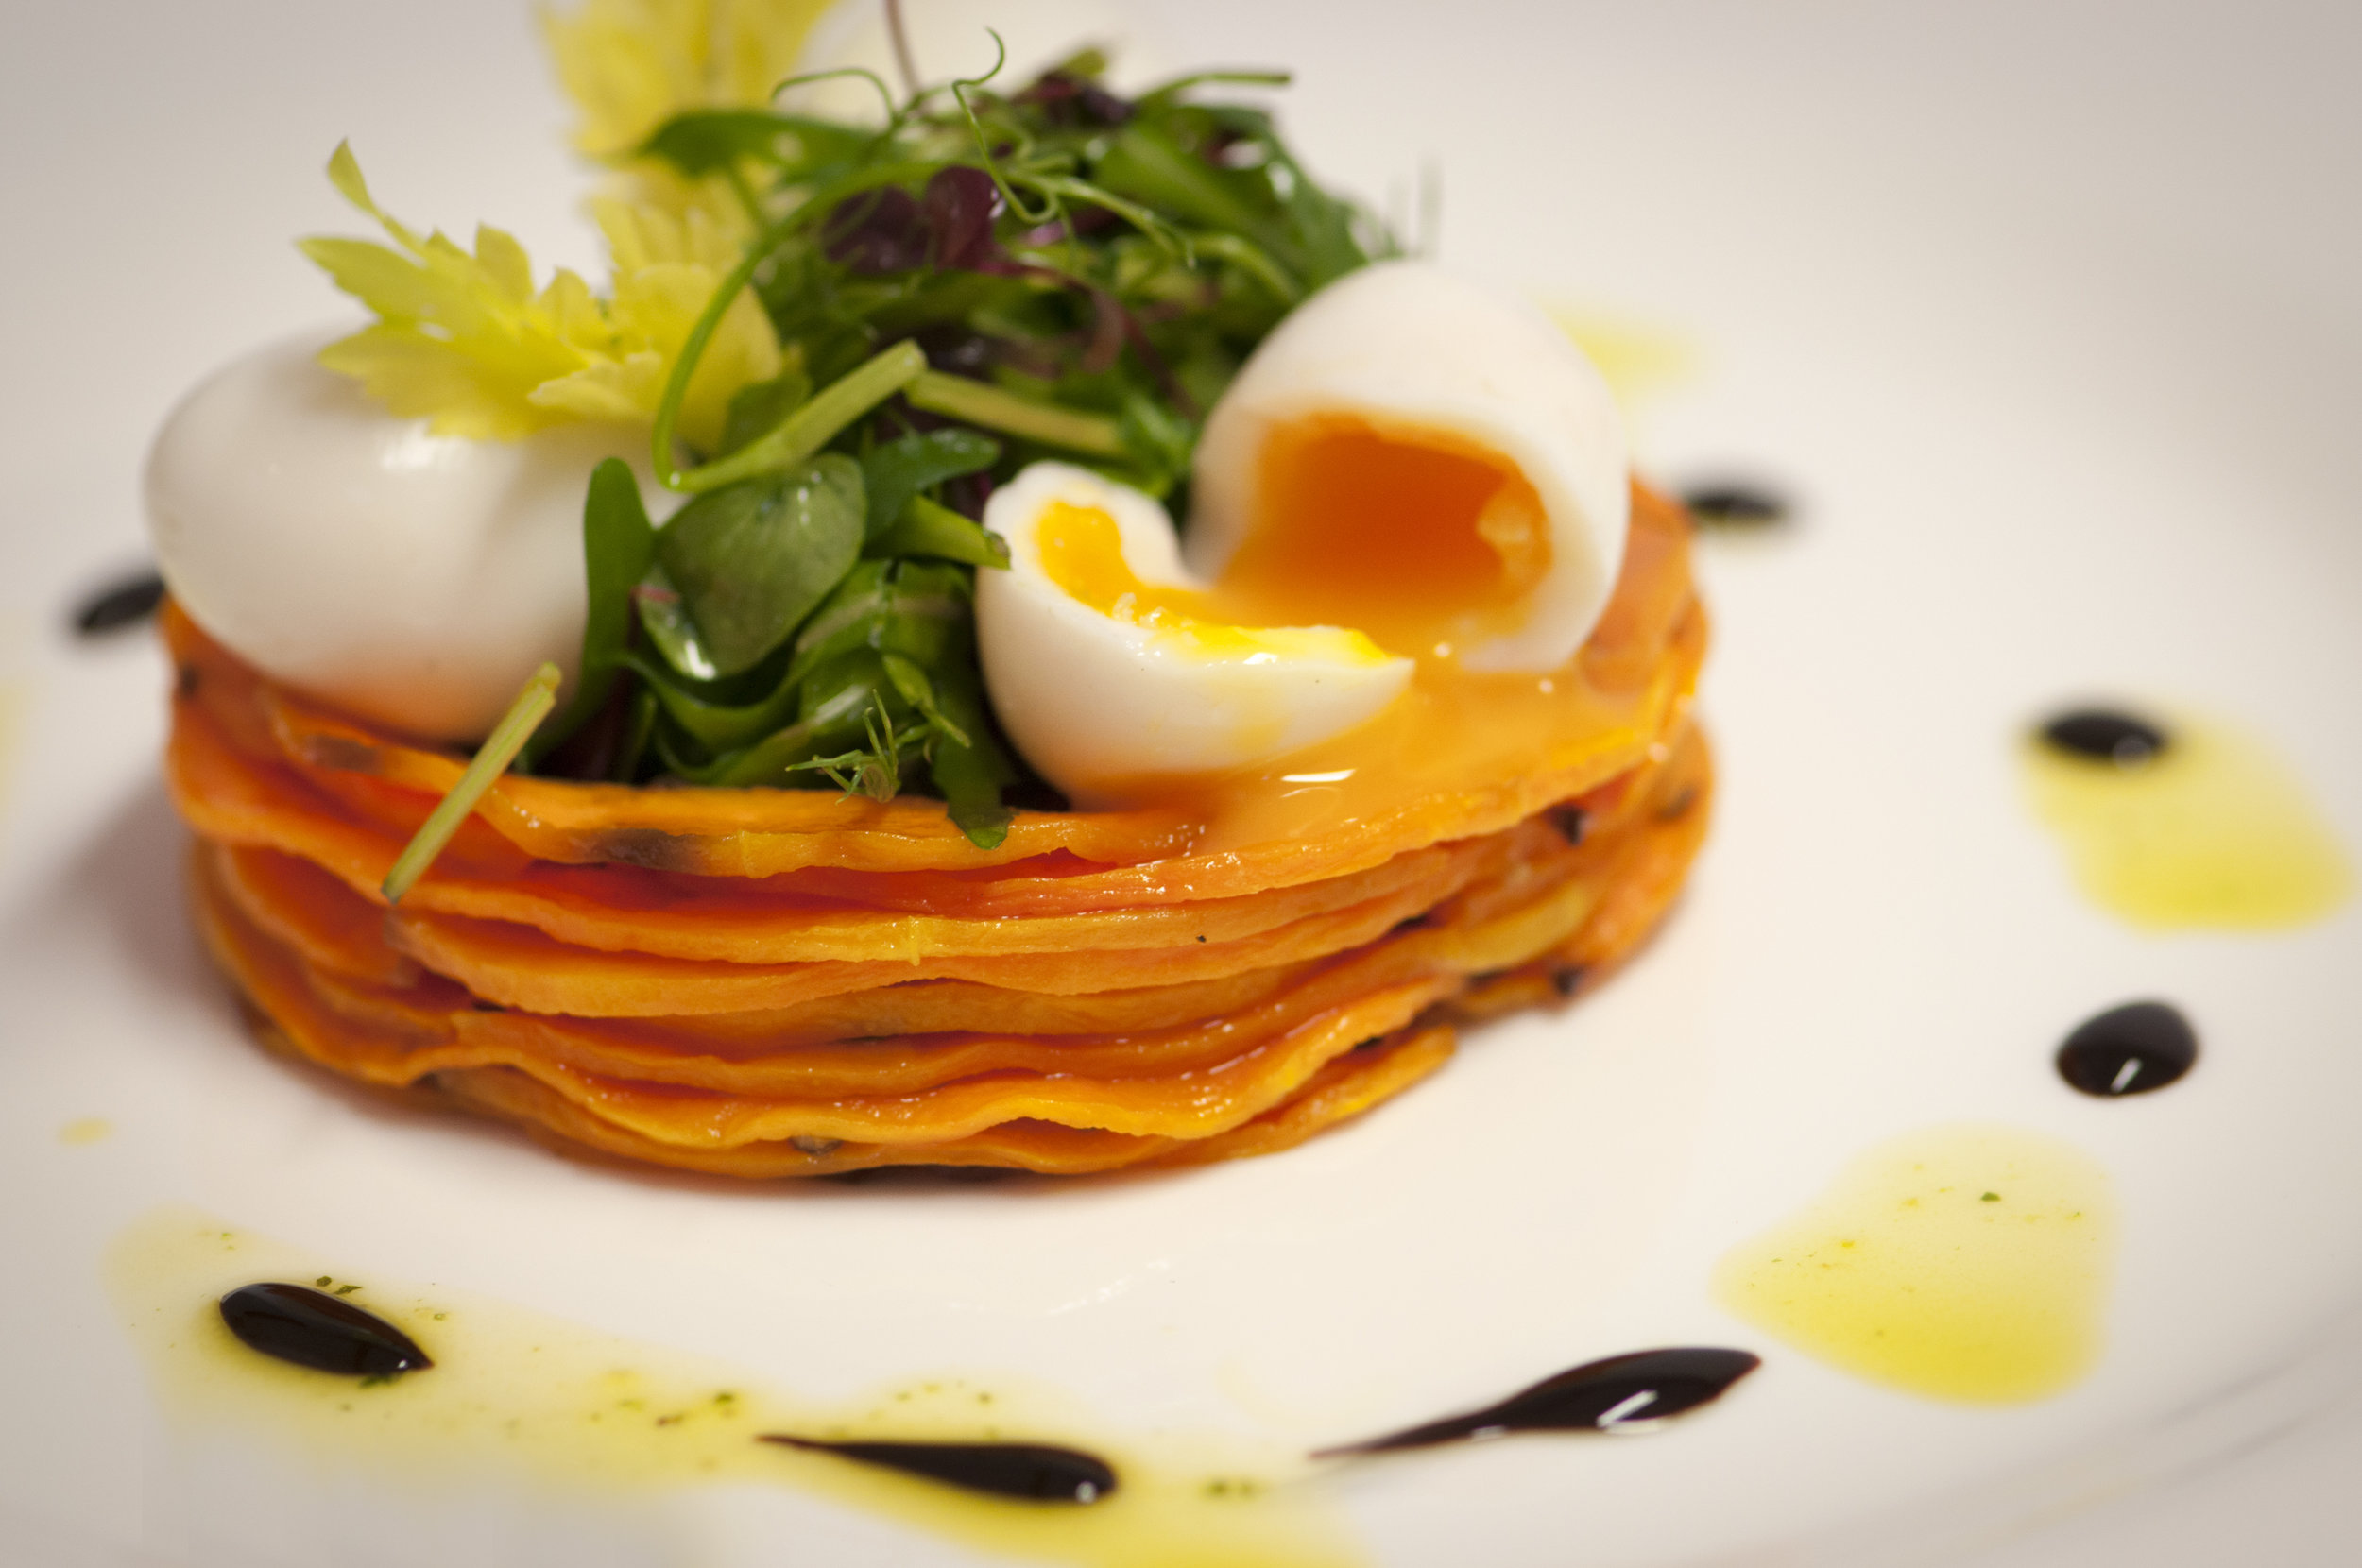 BUTTERNUT SQUASH STACK WITH QUAIL EGGS